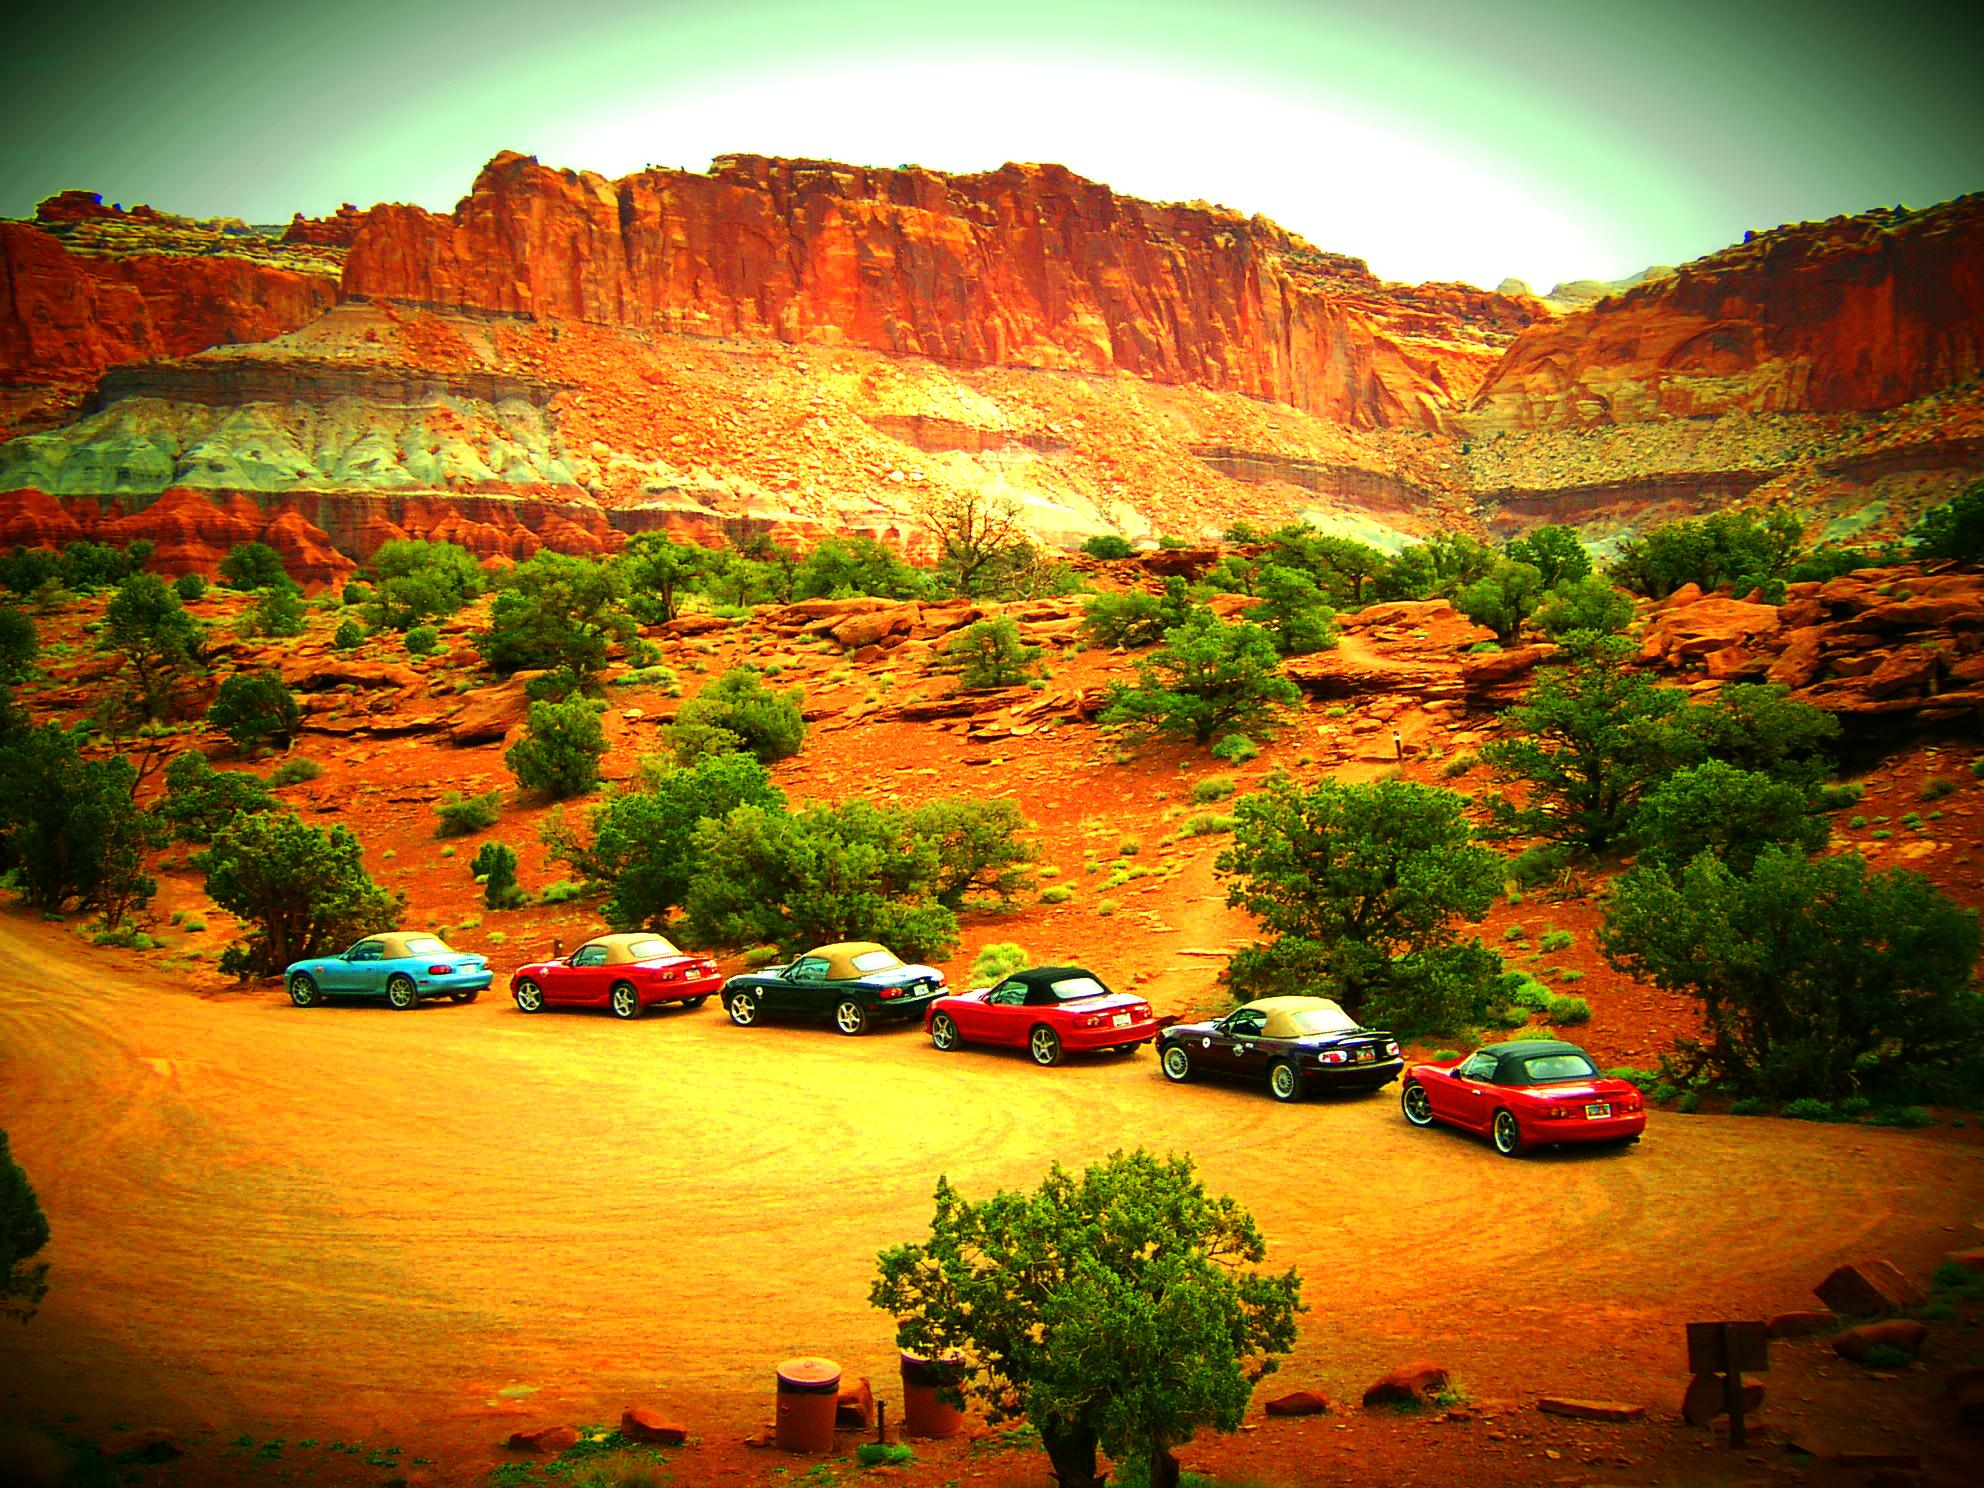 Moab, Glow_with 1995 Merlot M Edition_20